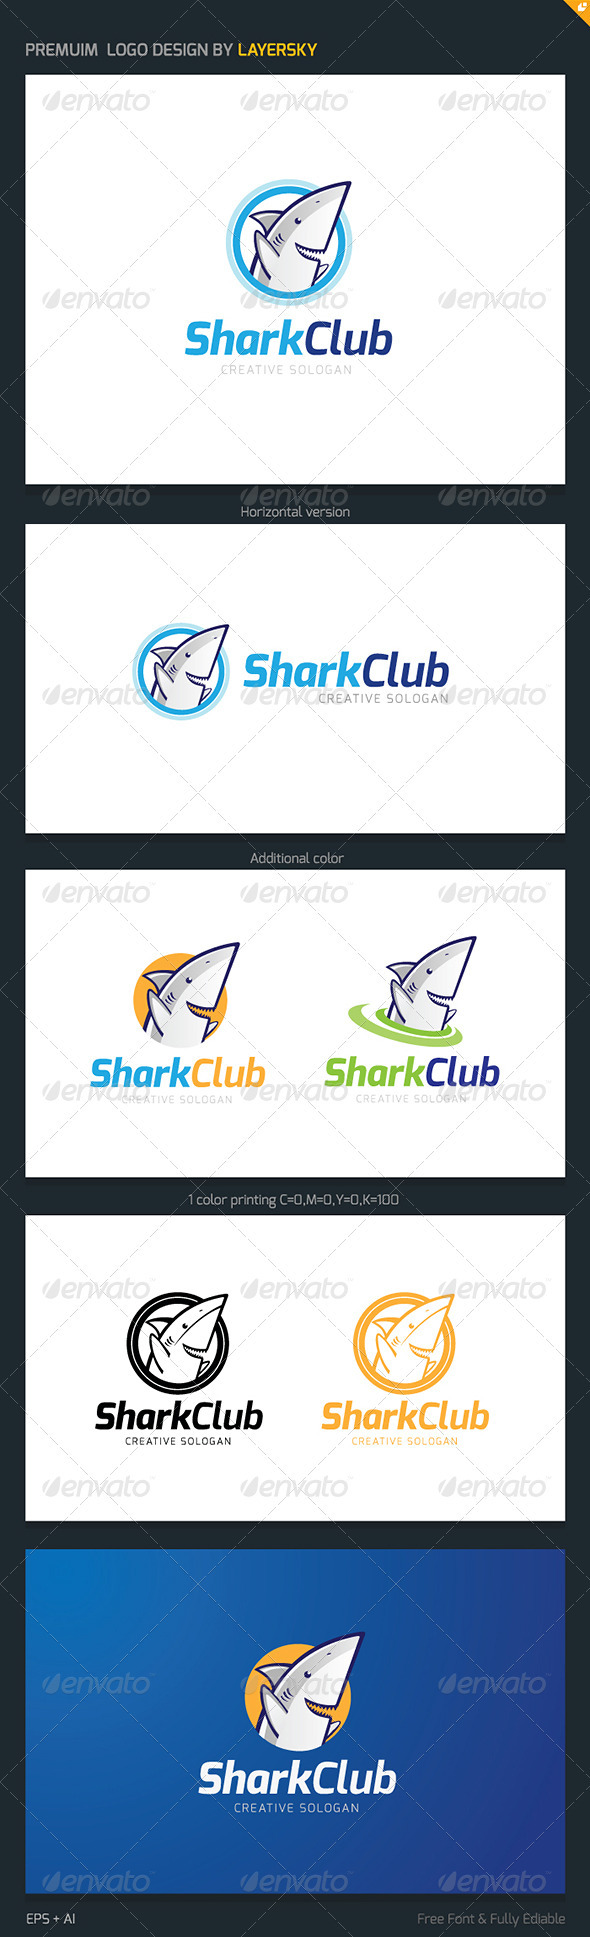 GraphicRiver Shark Club Logo 3948697